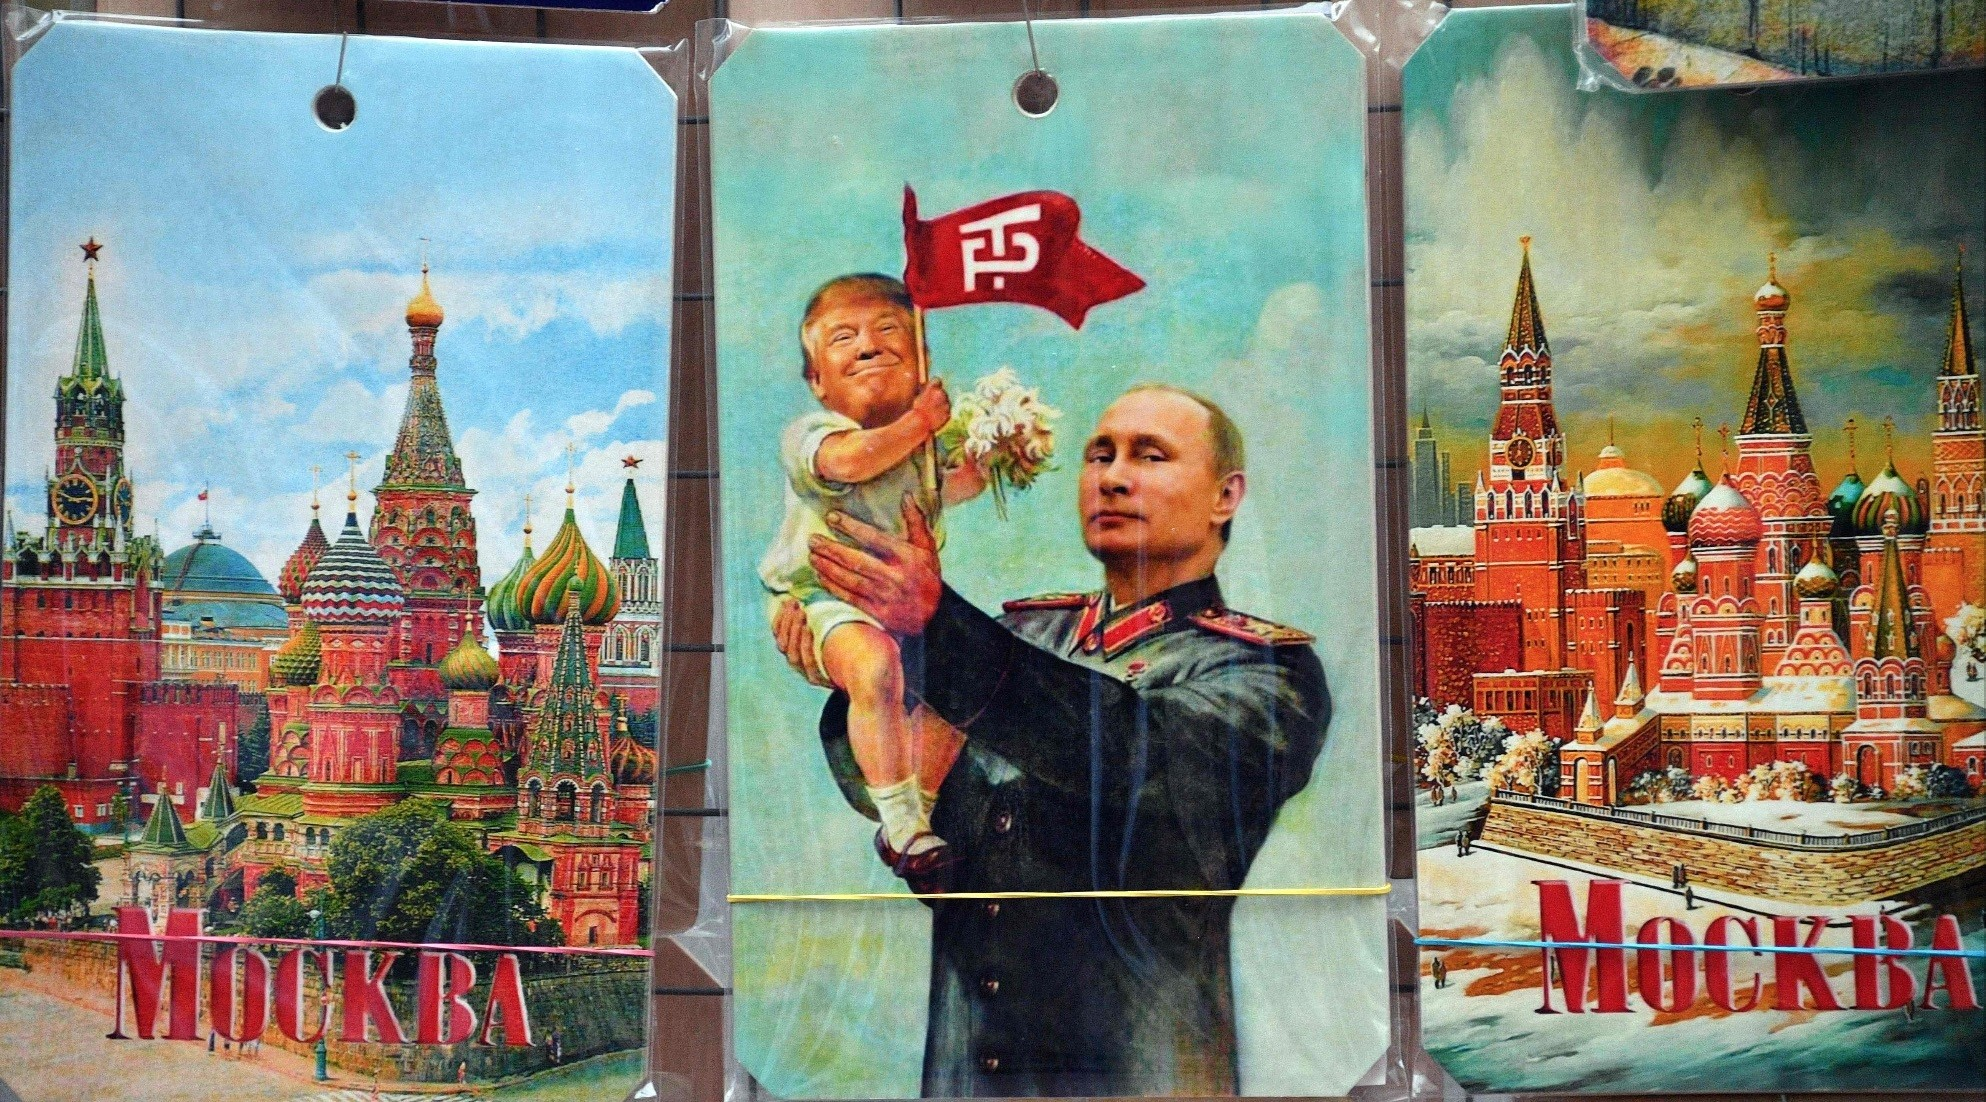 A souvenir kiosk offers a drawing depicting Russian President Vladimir Putin holding a baby with the face of U.S. President Donald Trump, based a propaganda poster showing late soviet leader Joseph Stalin holding a baby, in Moscow, July 5.